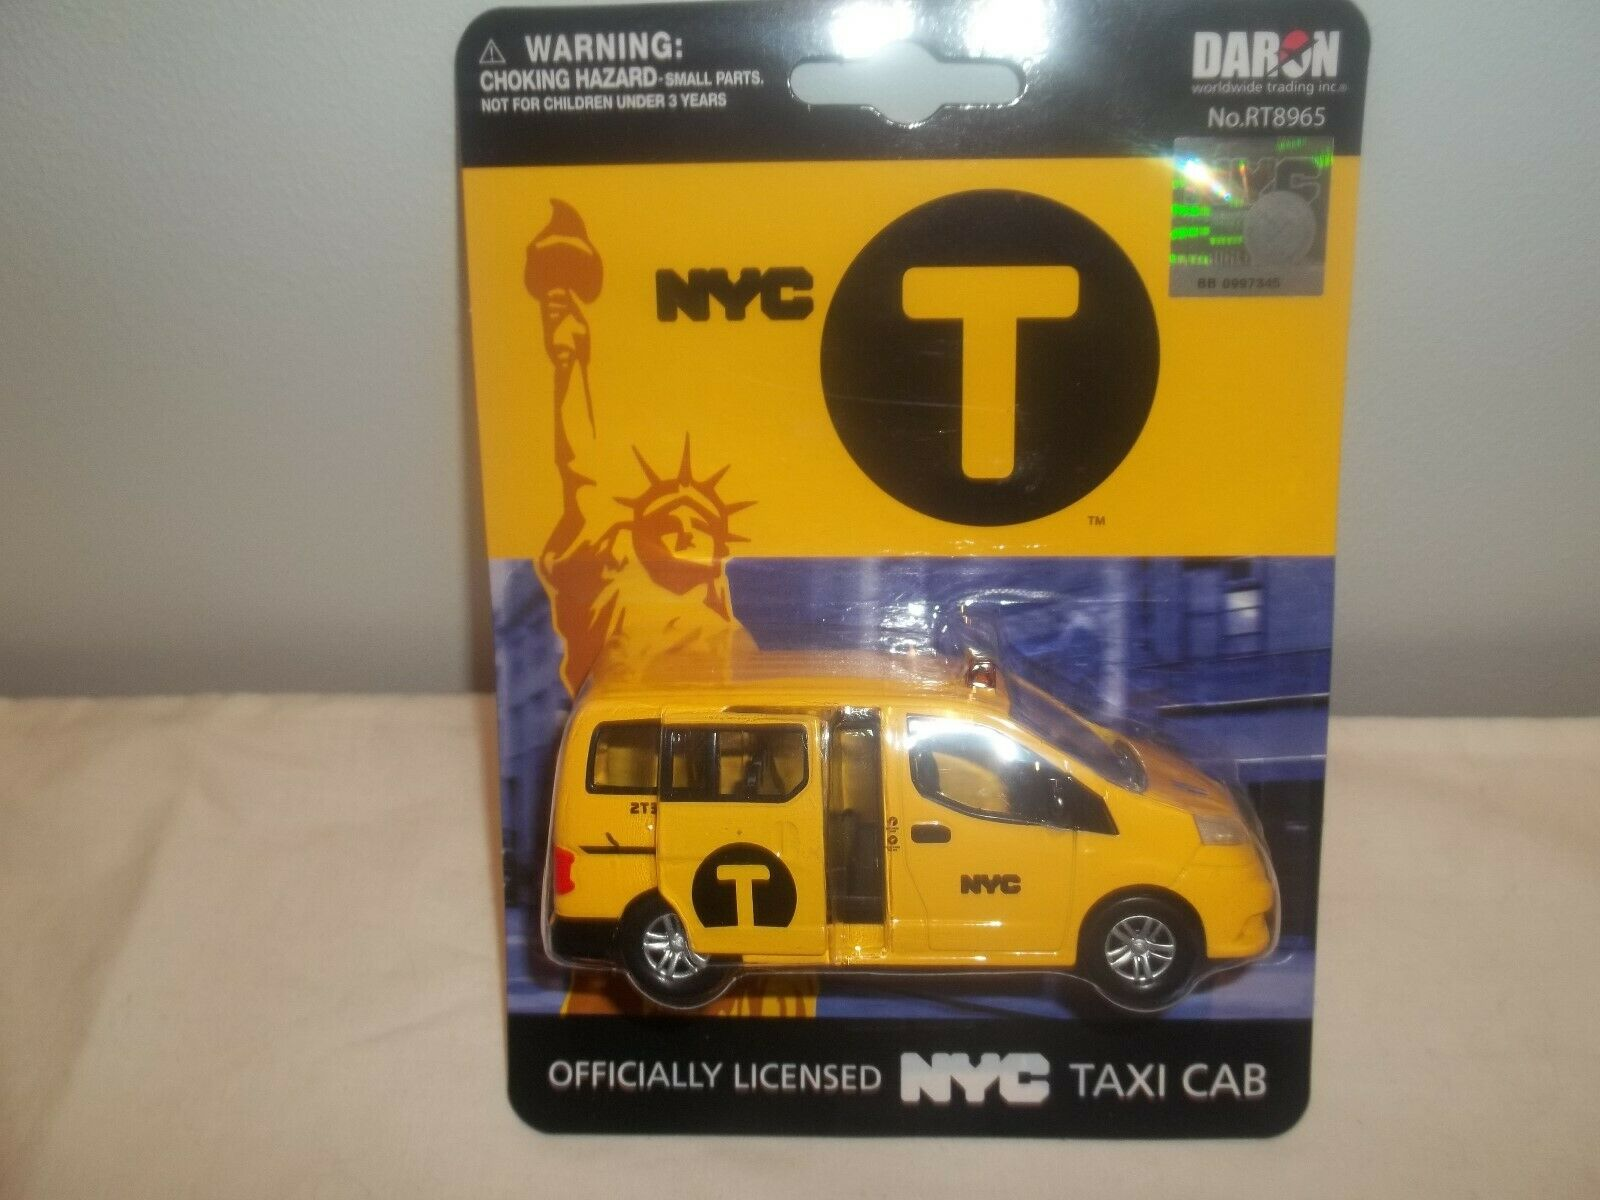 Daron Toys RT8965 NYC Taxi Cab 1 43 New & Sealed